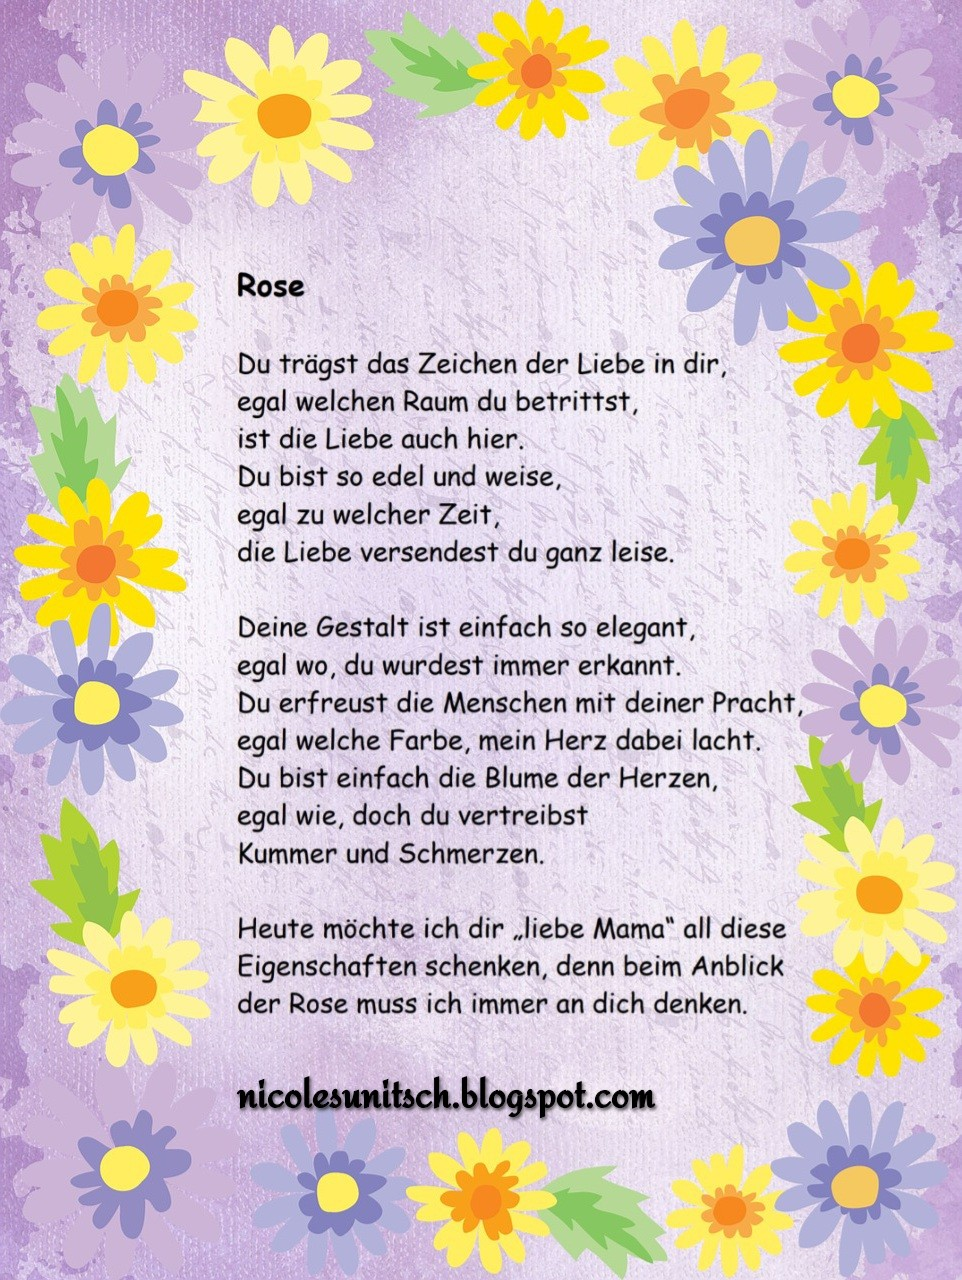 Gedichte Von Nicole Sunitsch Autorin April 2019